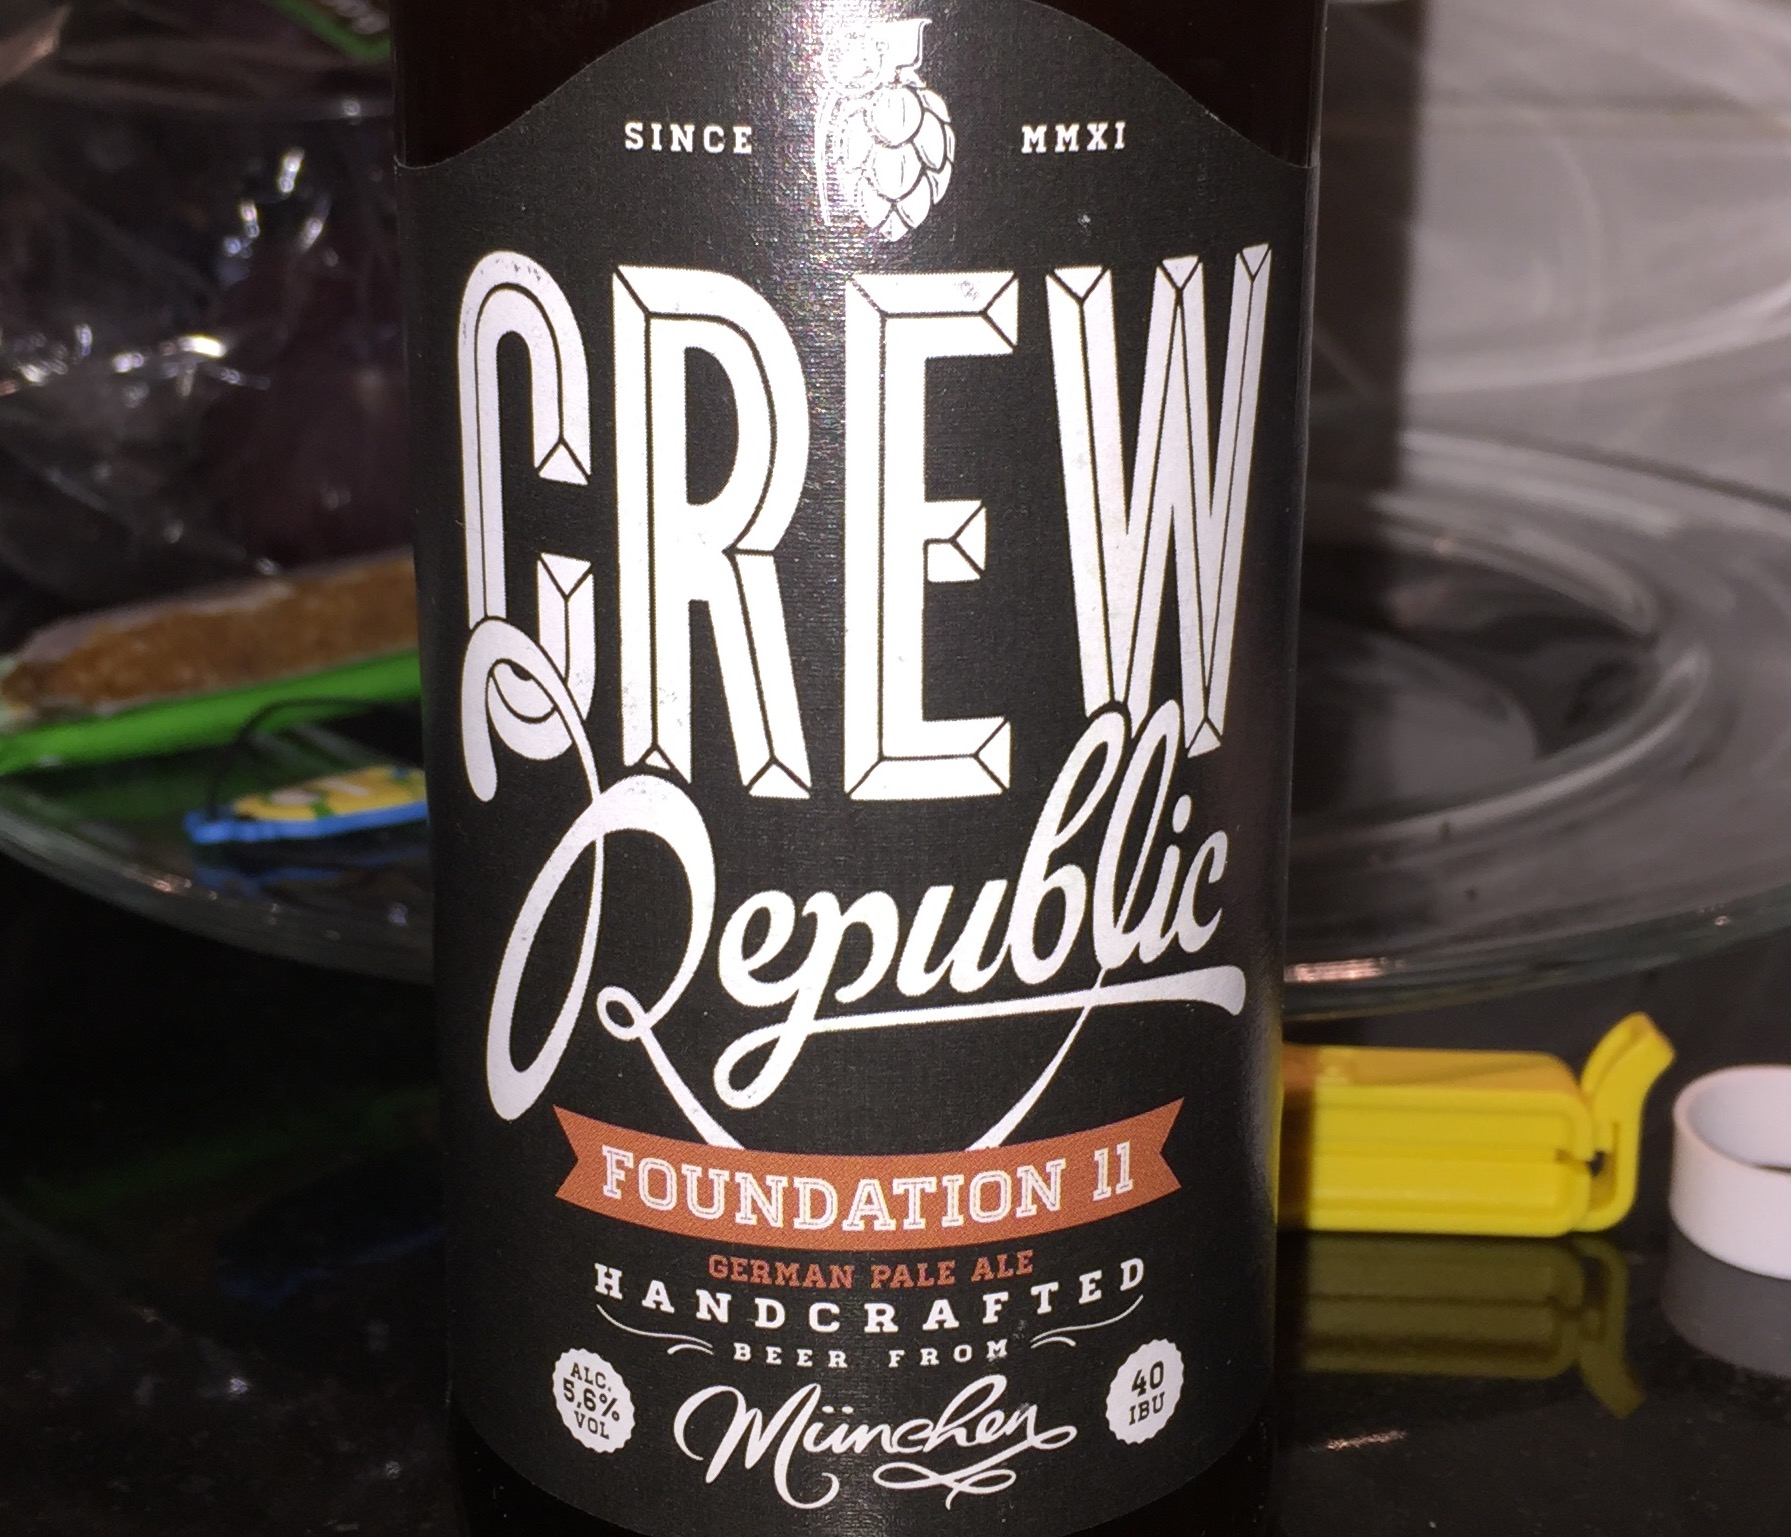 Crew Republic - Foundation II